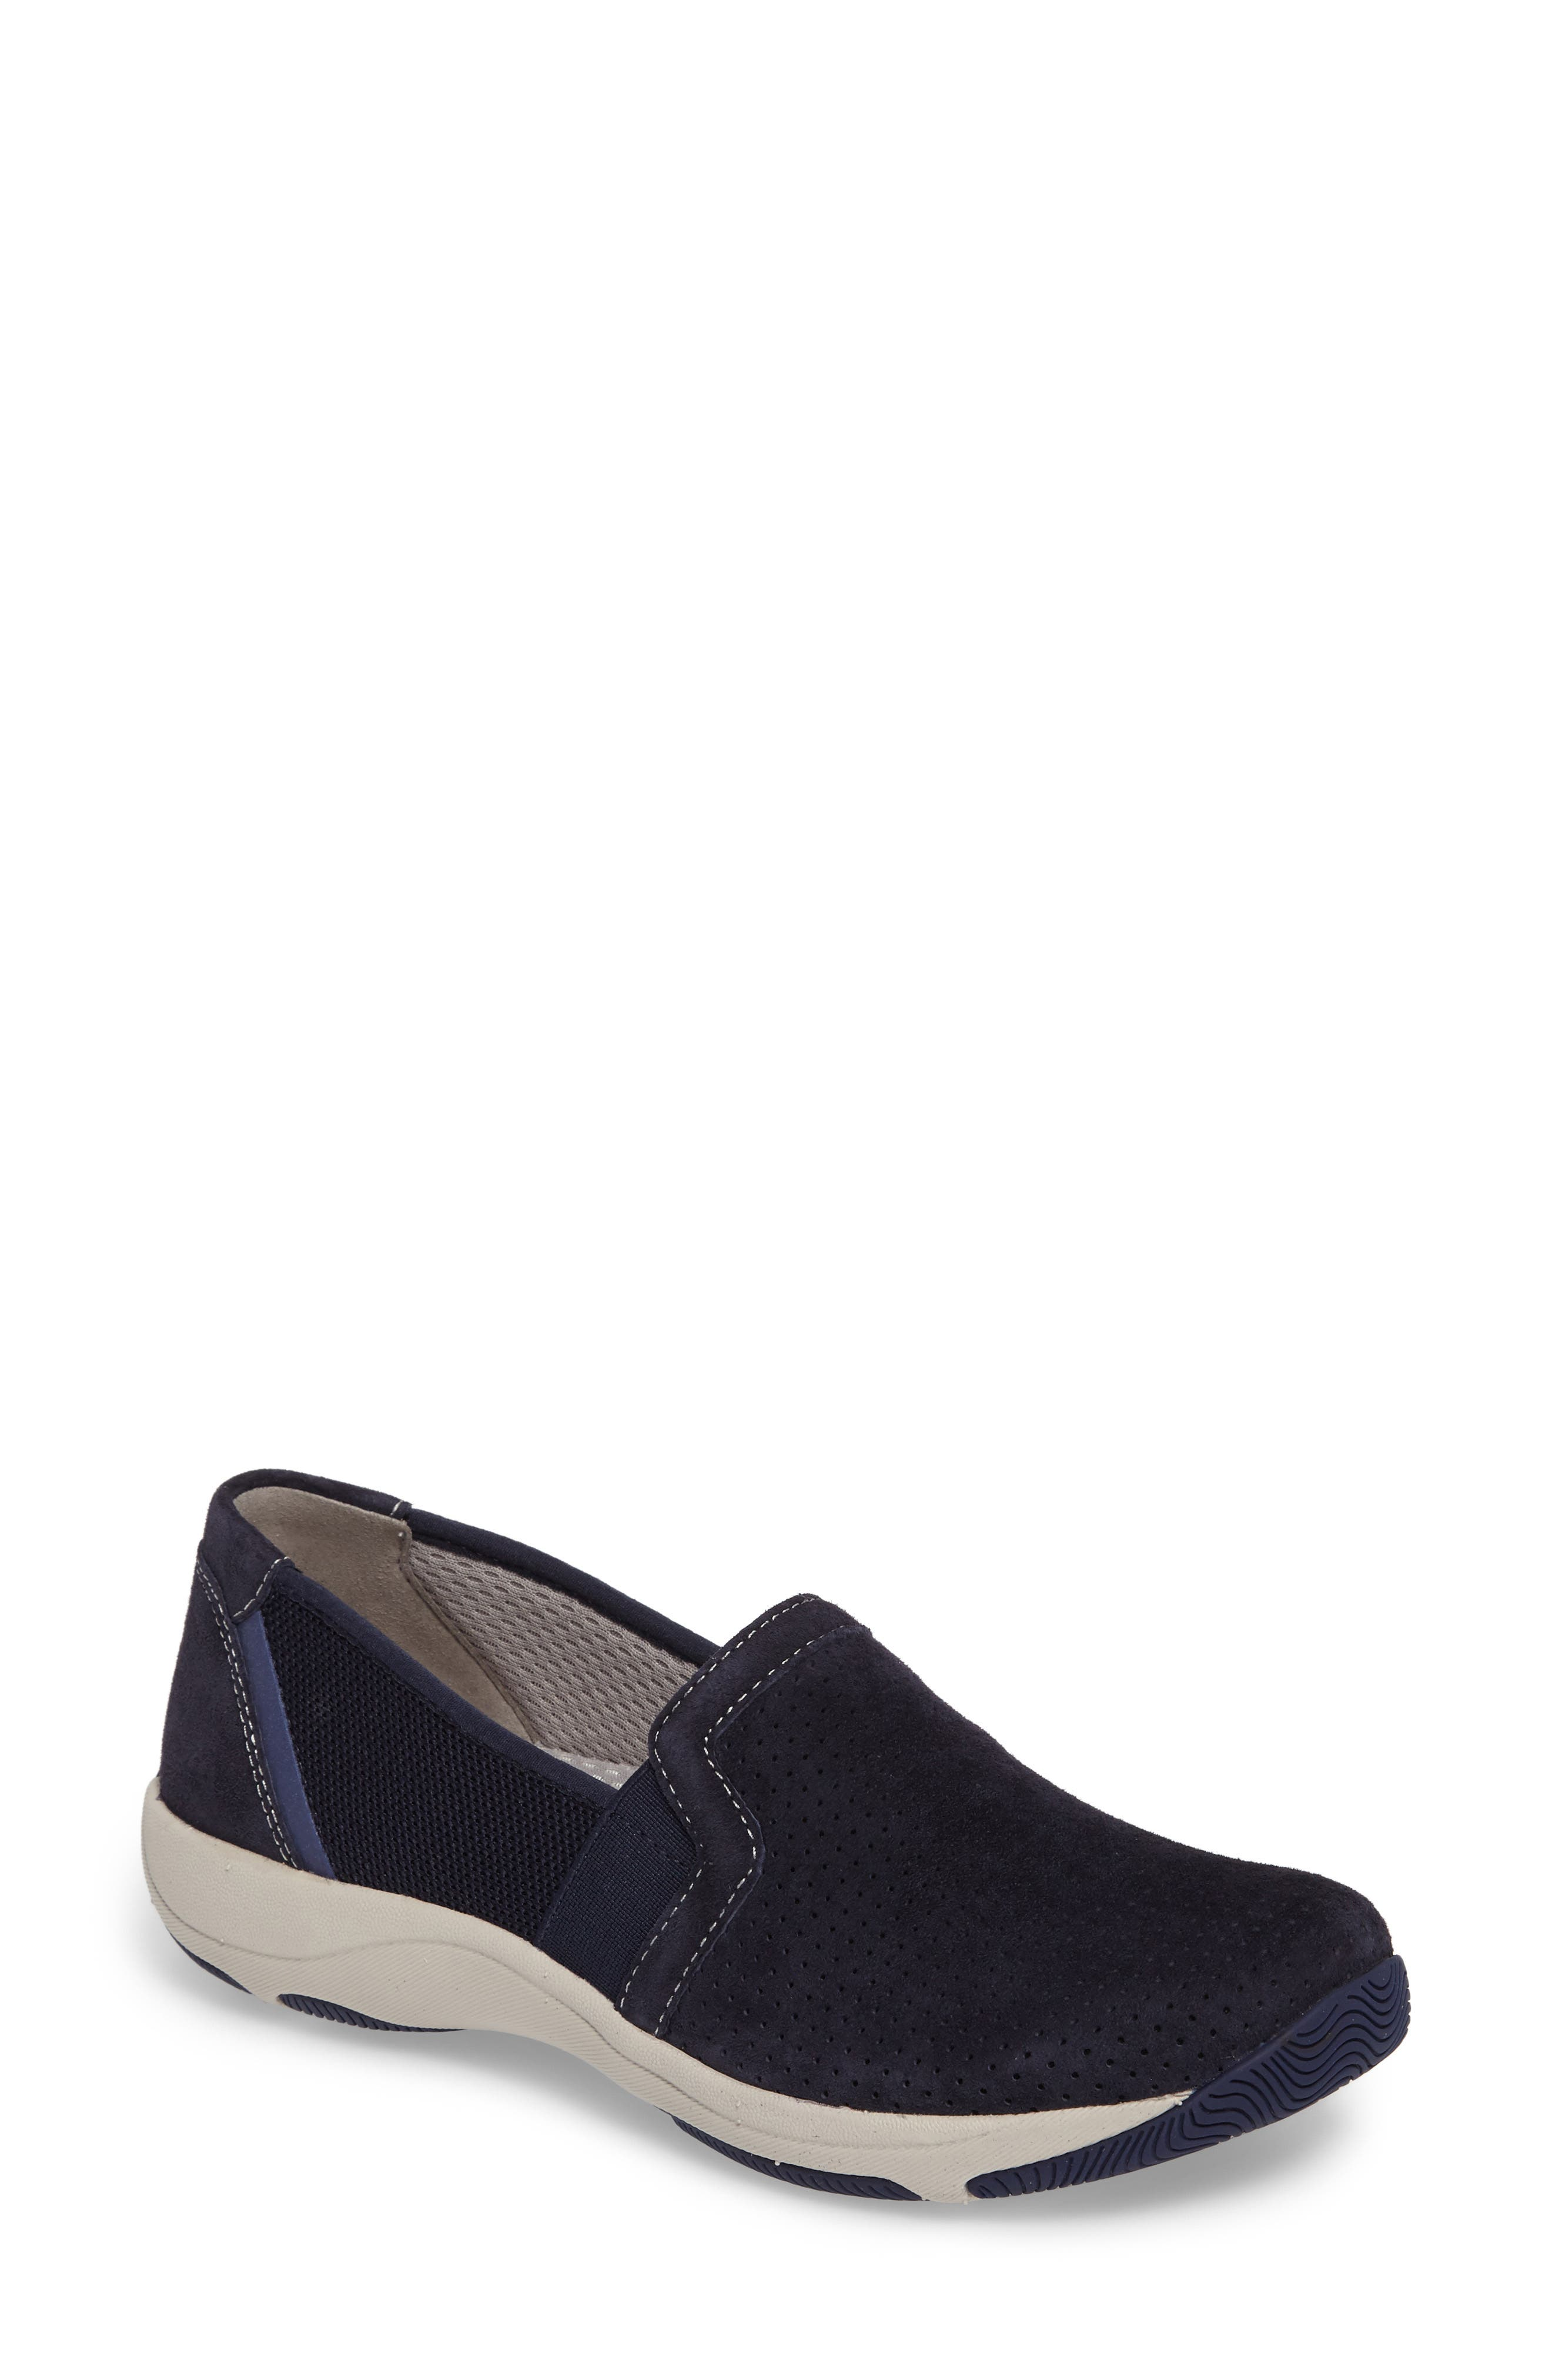 Halifax Collection Halle Slip-On Sneaker,                         Main,                         color, Navy Suede